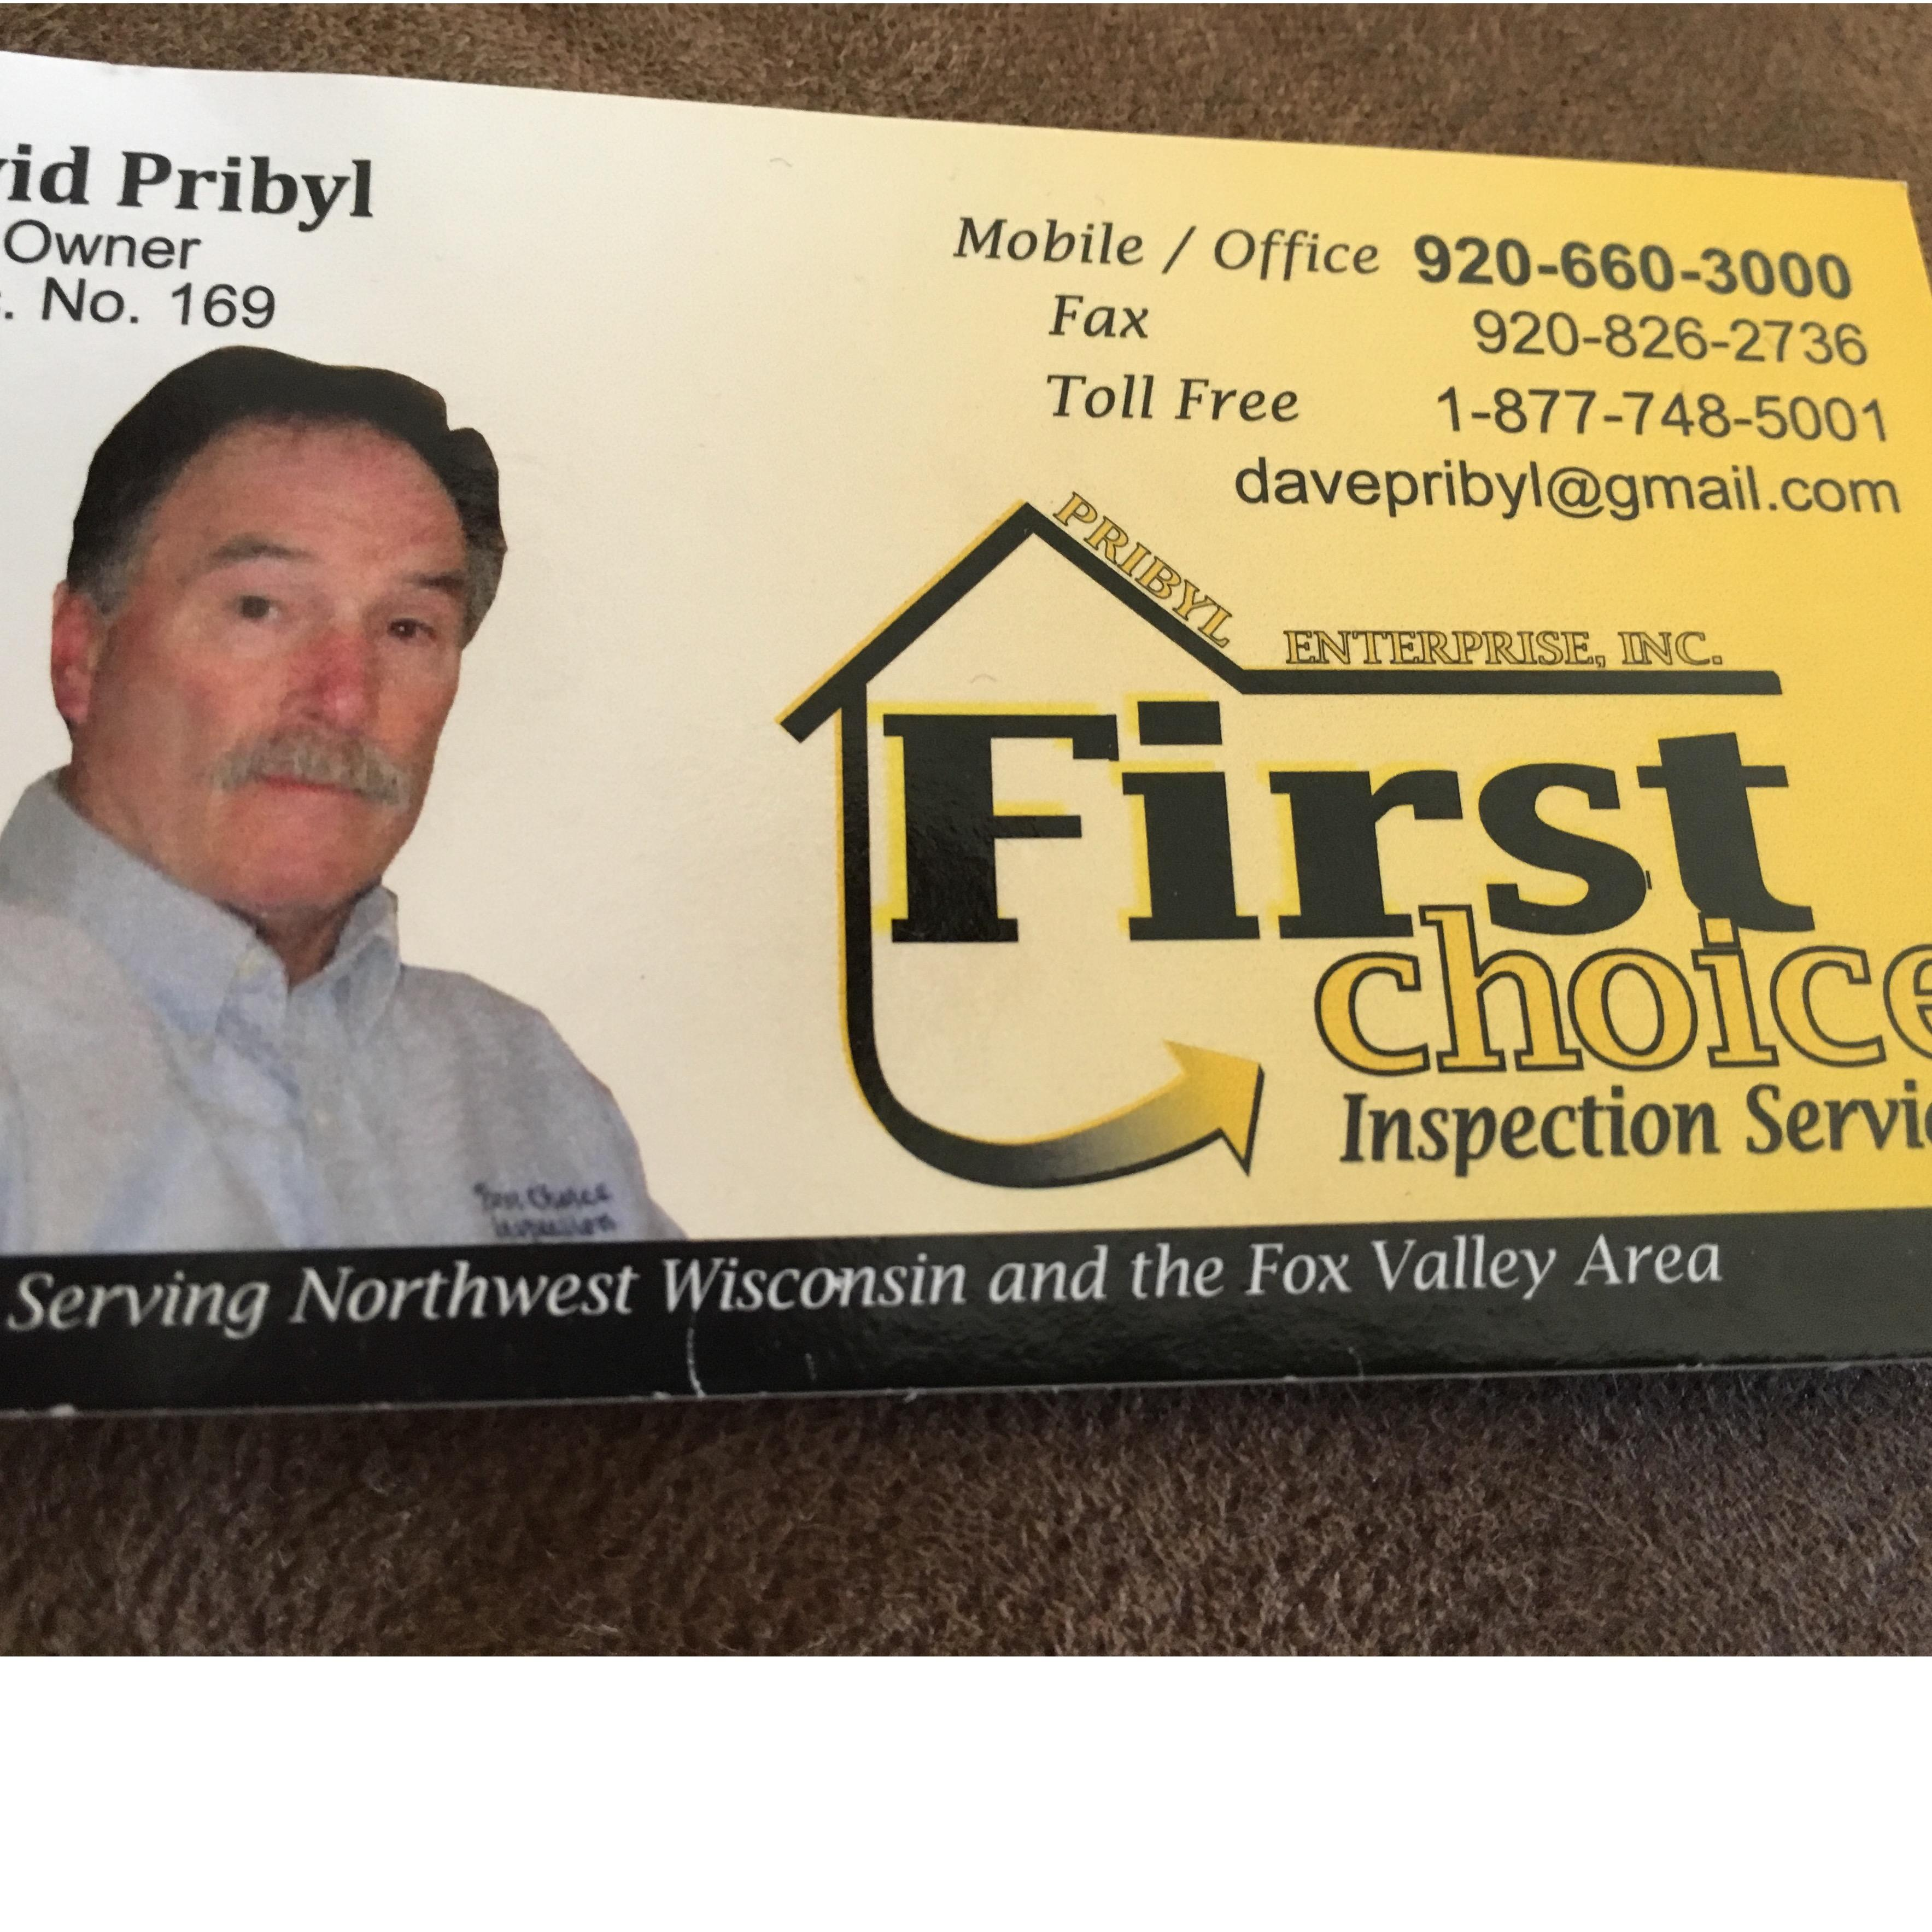 First Choice Inspection